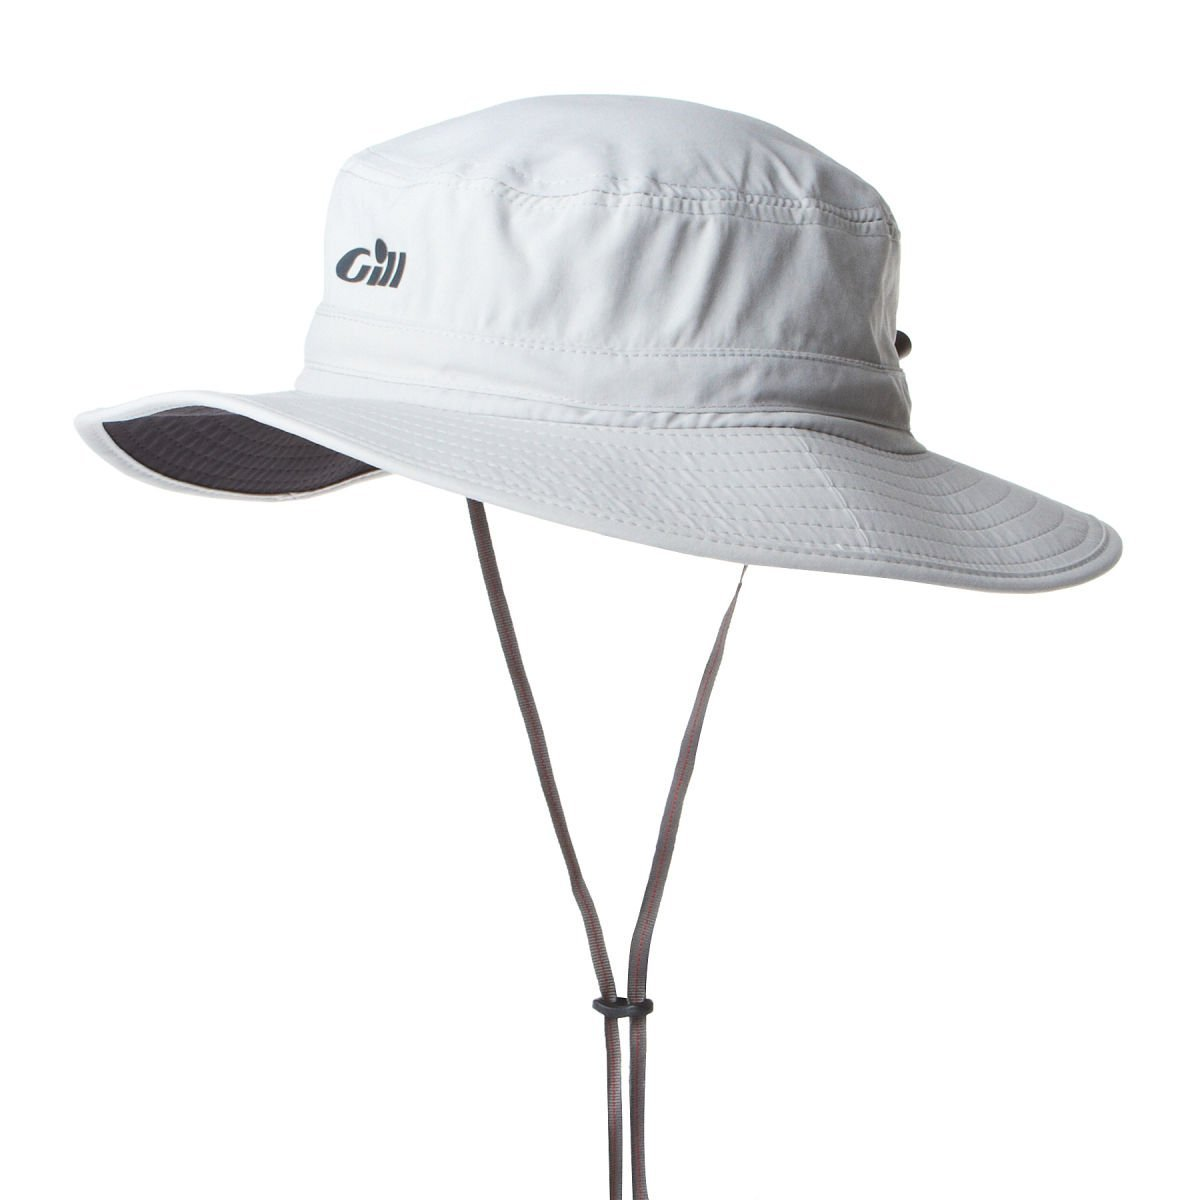 Details about Gill Technical Uv Sun Hat With Hat Retainer 7870a39a2f4